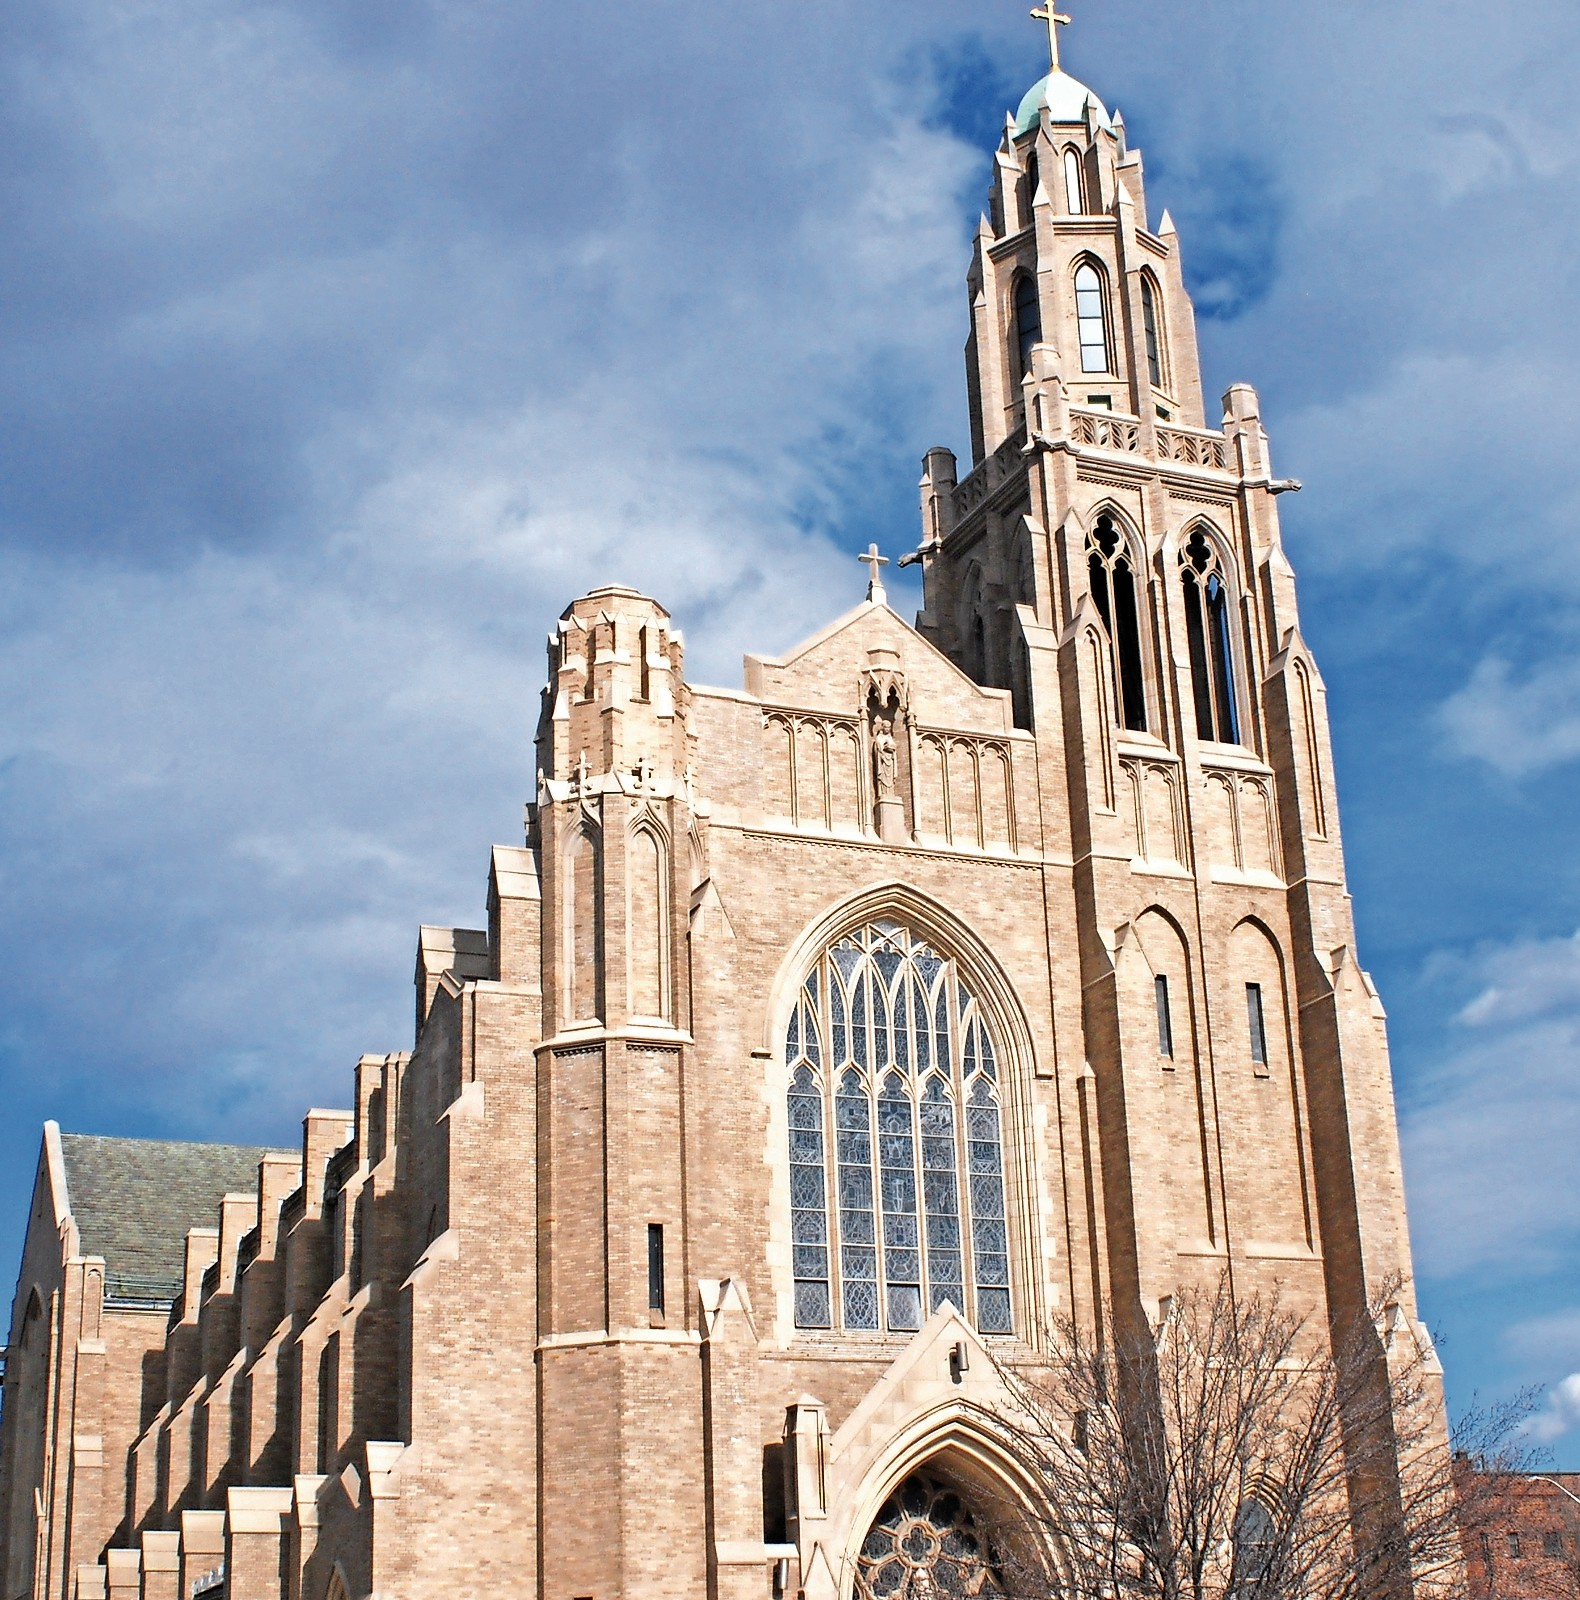 Constructed in 1937, St. Agnes Cathedral has graced Rockville Centre's landscape for the past 80 years. It has served as the Chair of the Bishop of the Diocese of Rockville Centre since 1957.